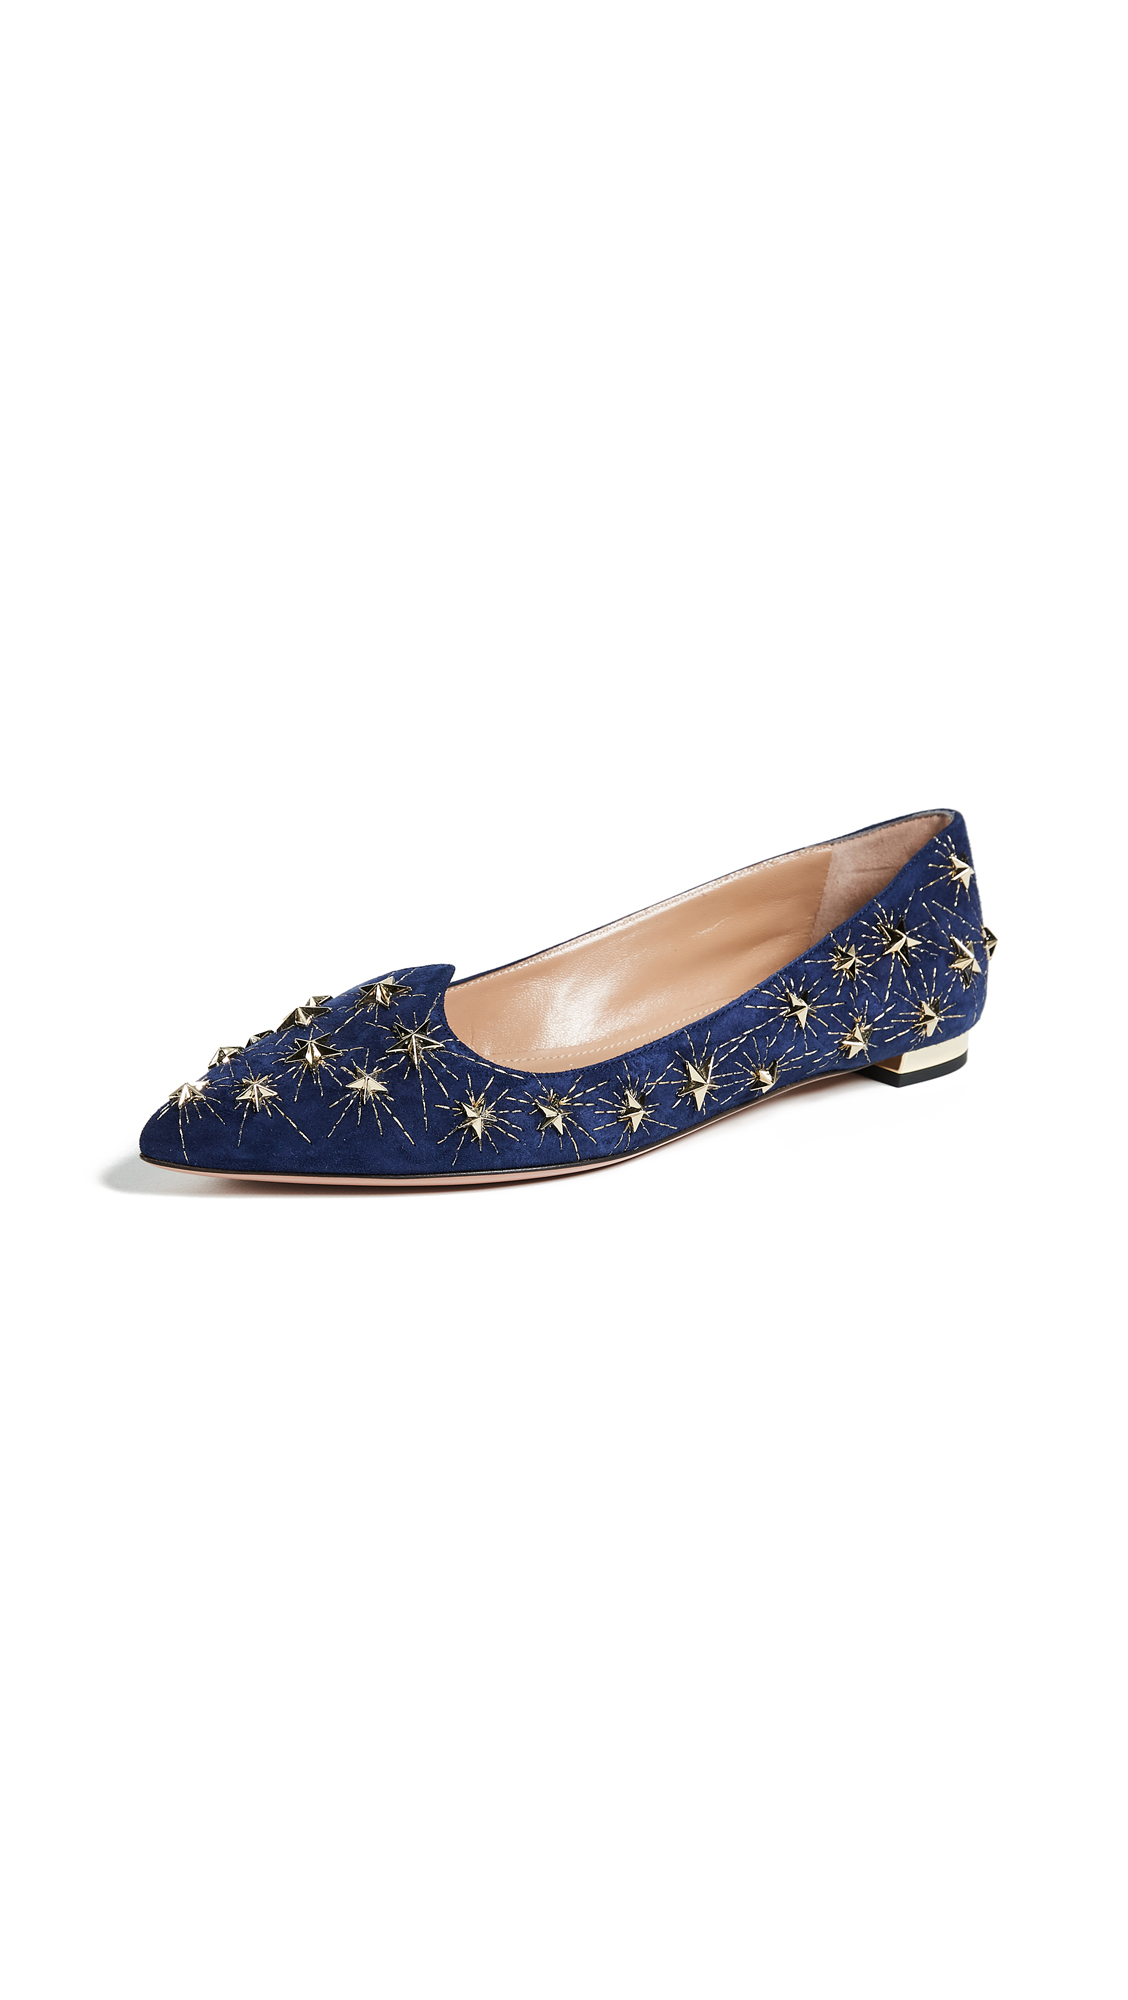 Aquazzura Cosmic Star Flats - Navy